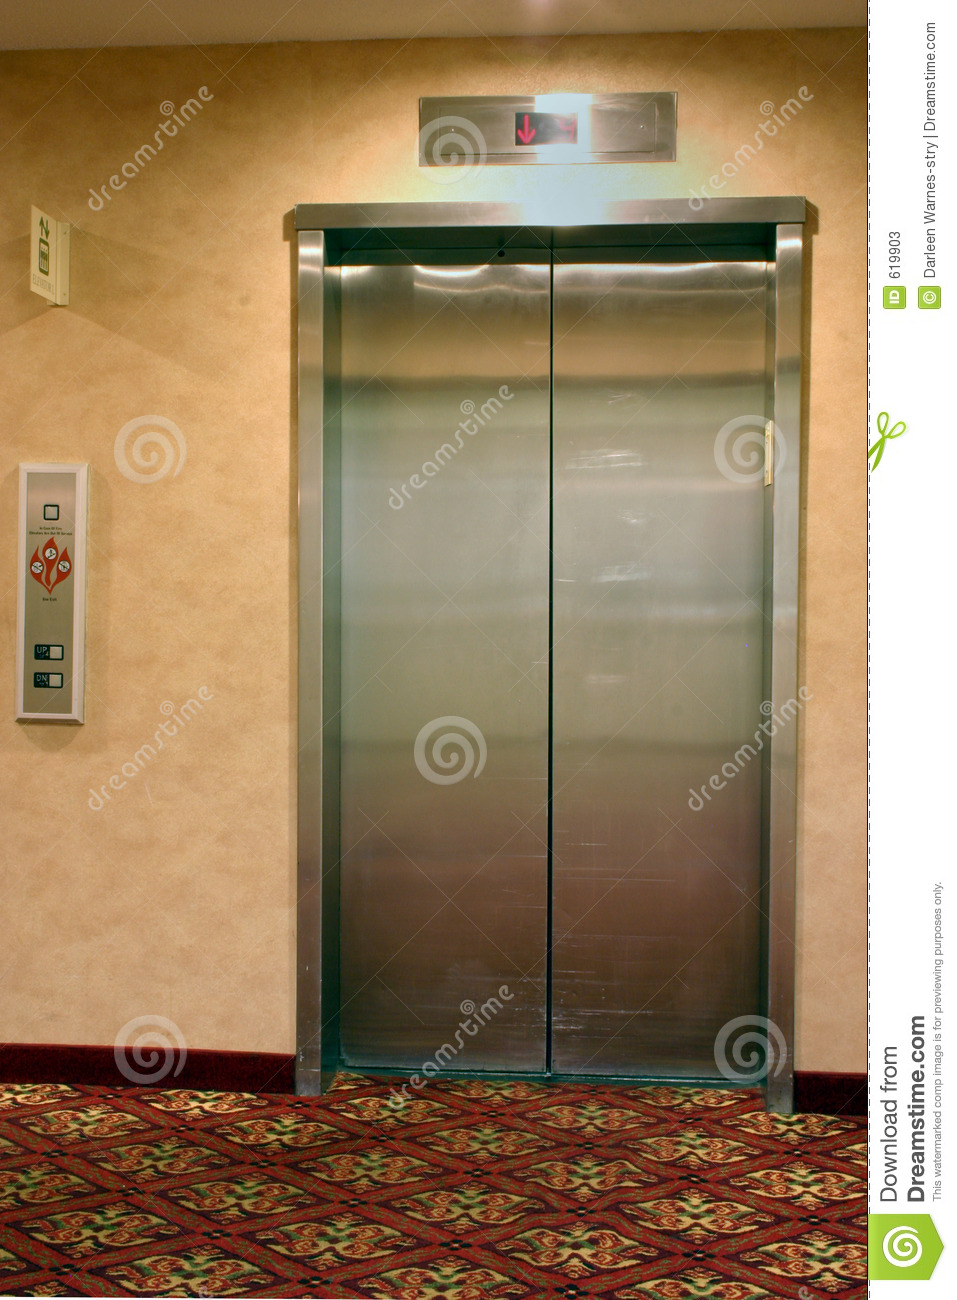 Indoor elevator stock image image of elevate brushed for Indoor elevator